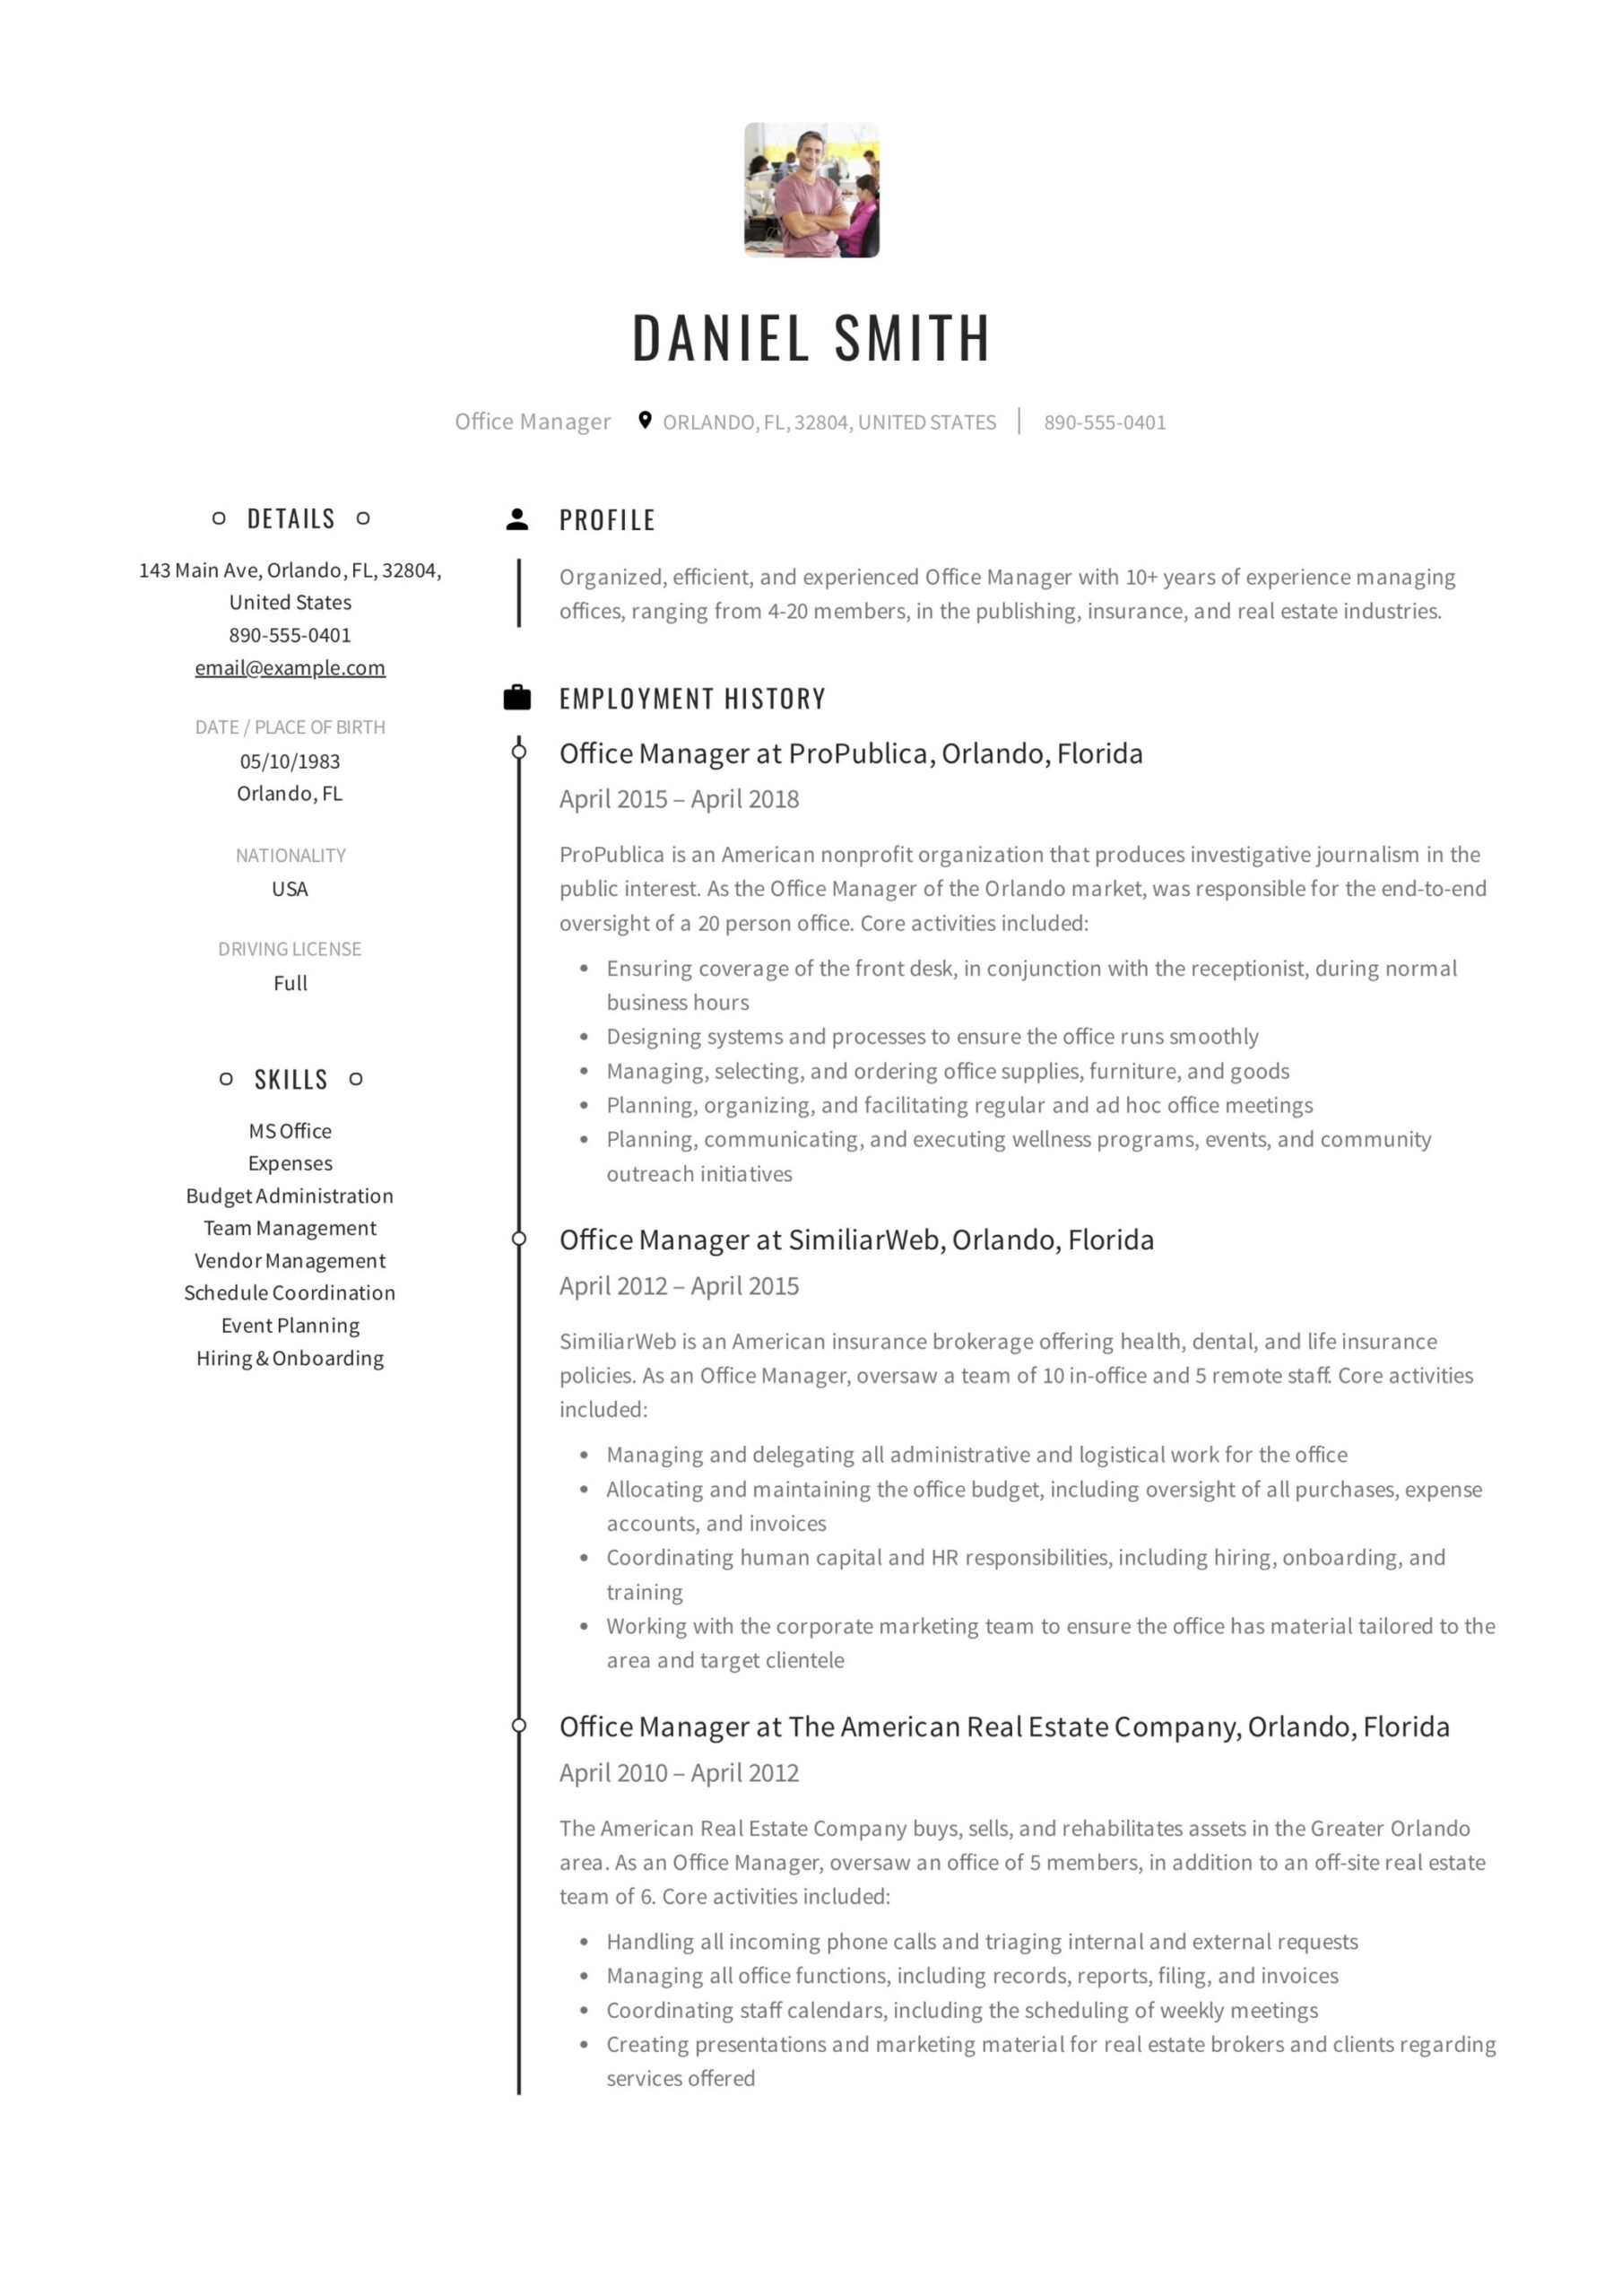 office manager resume guide samples pdf professional examples example excel vba on error Resume Professional Resume Examples 2020